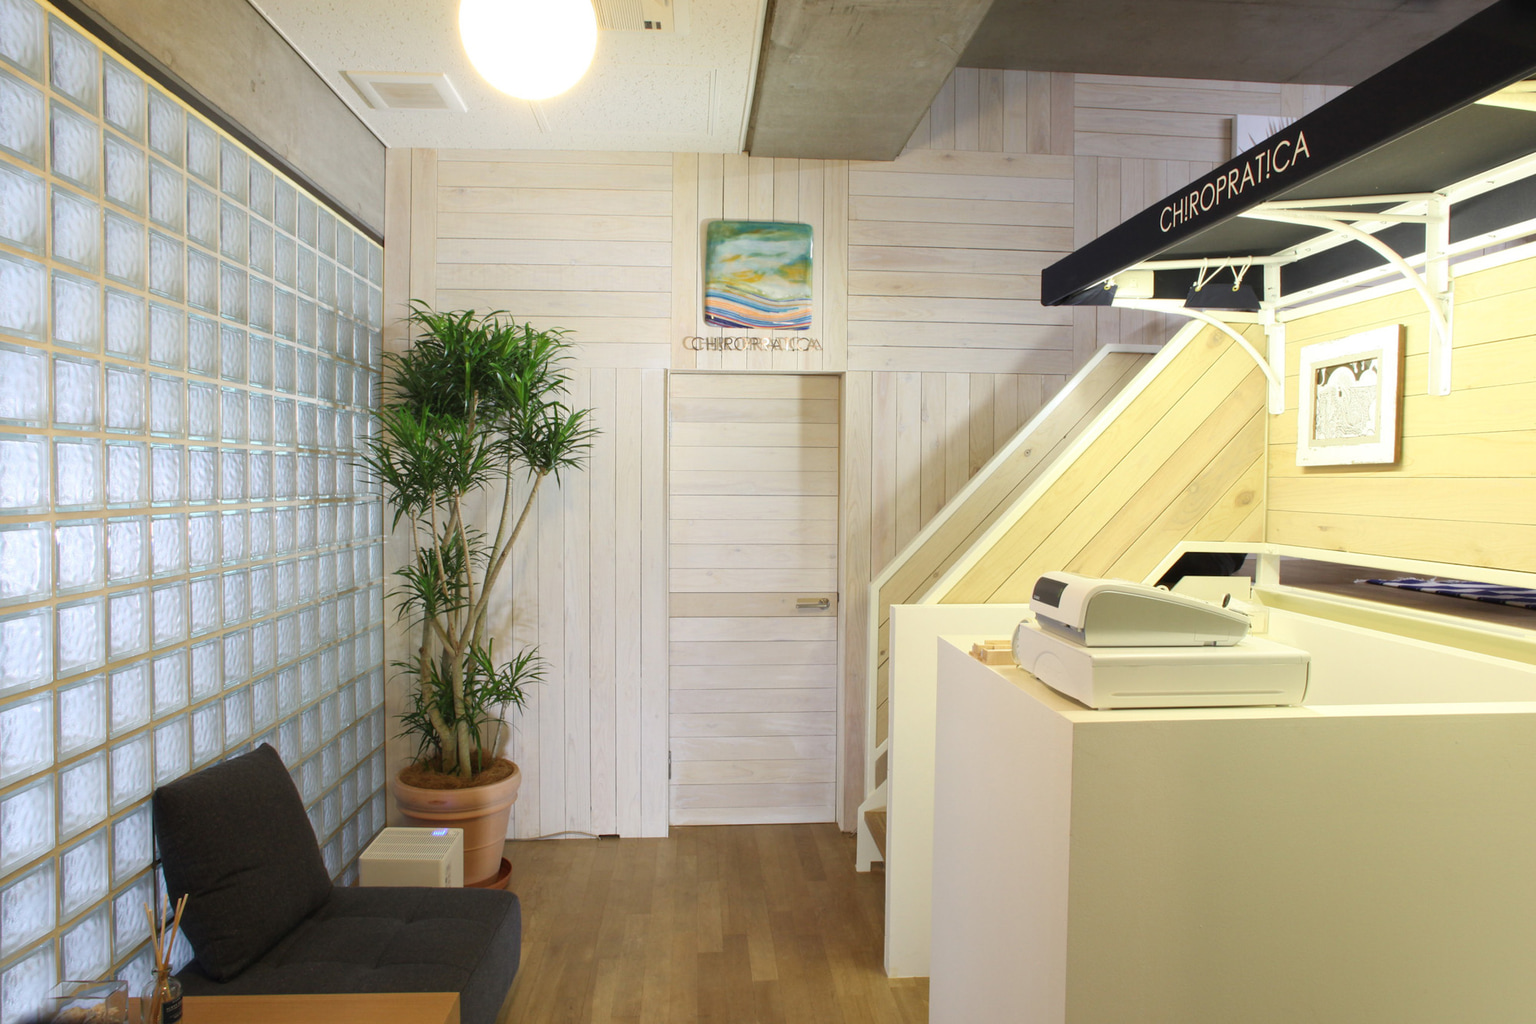 The chiropractic office in Azabu Tokyo